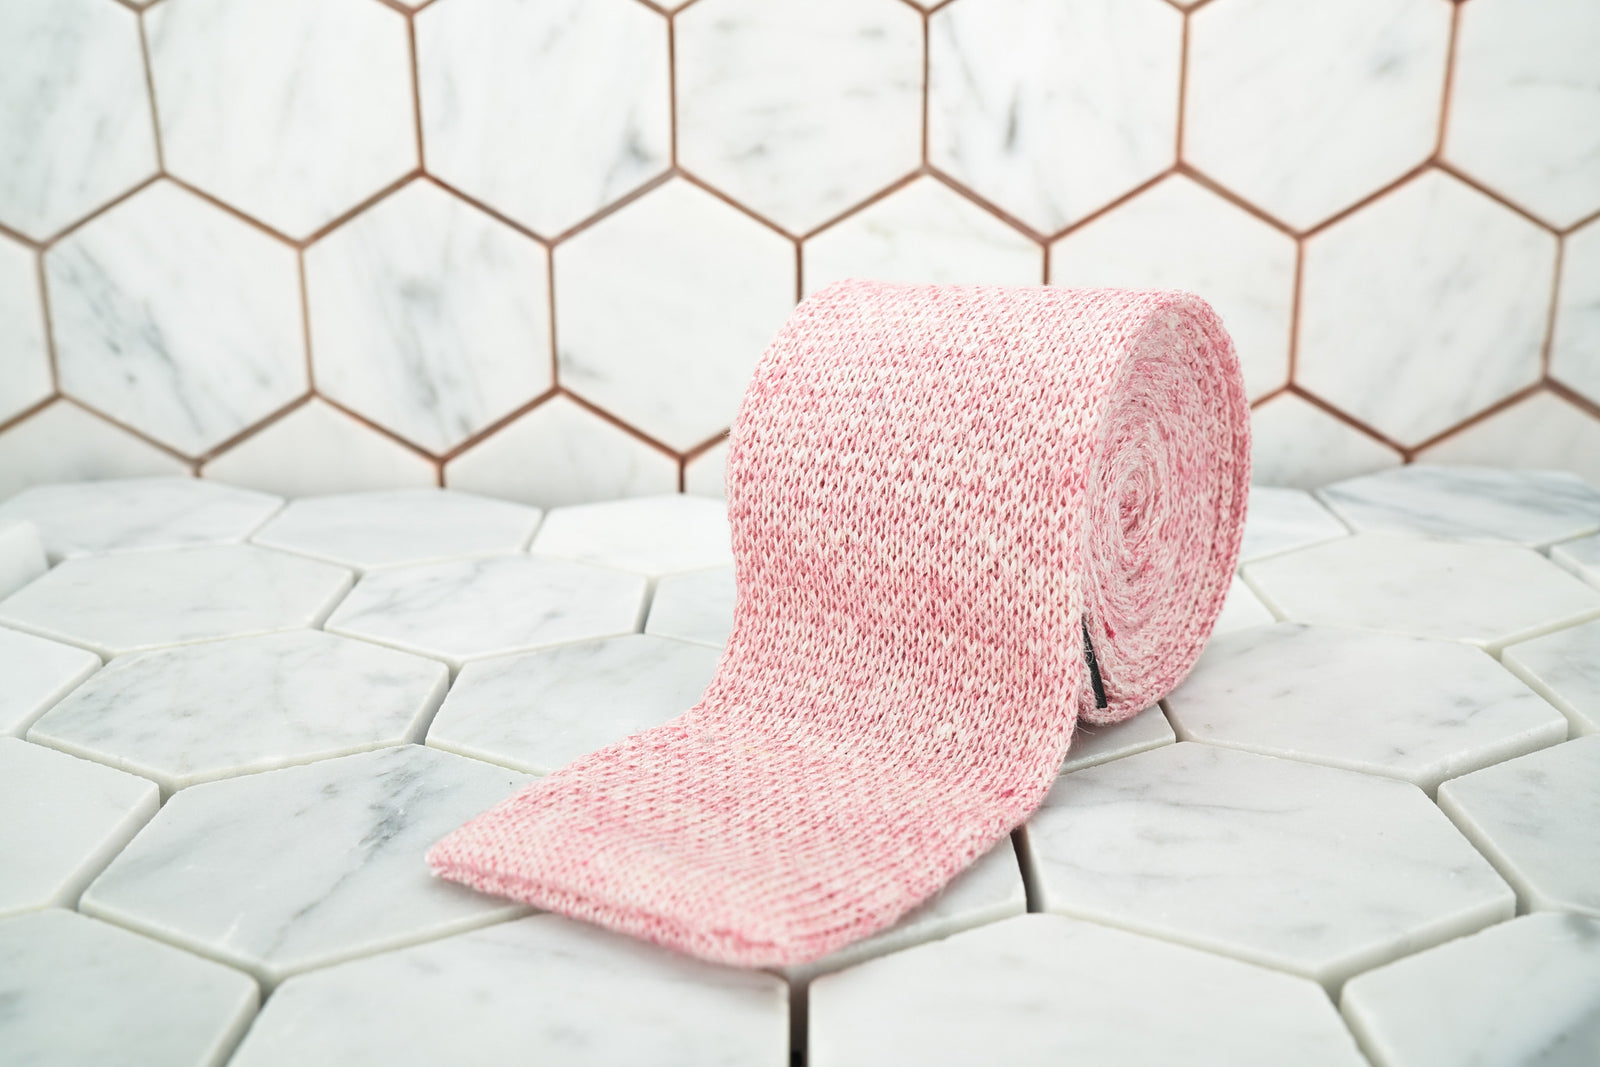 Dear Martian exclusive pink linen knitted tie rolled against a hexagonal background.